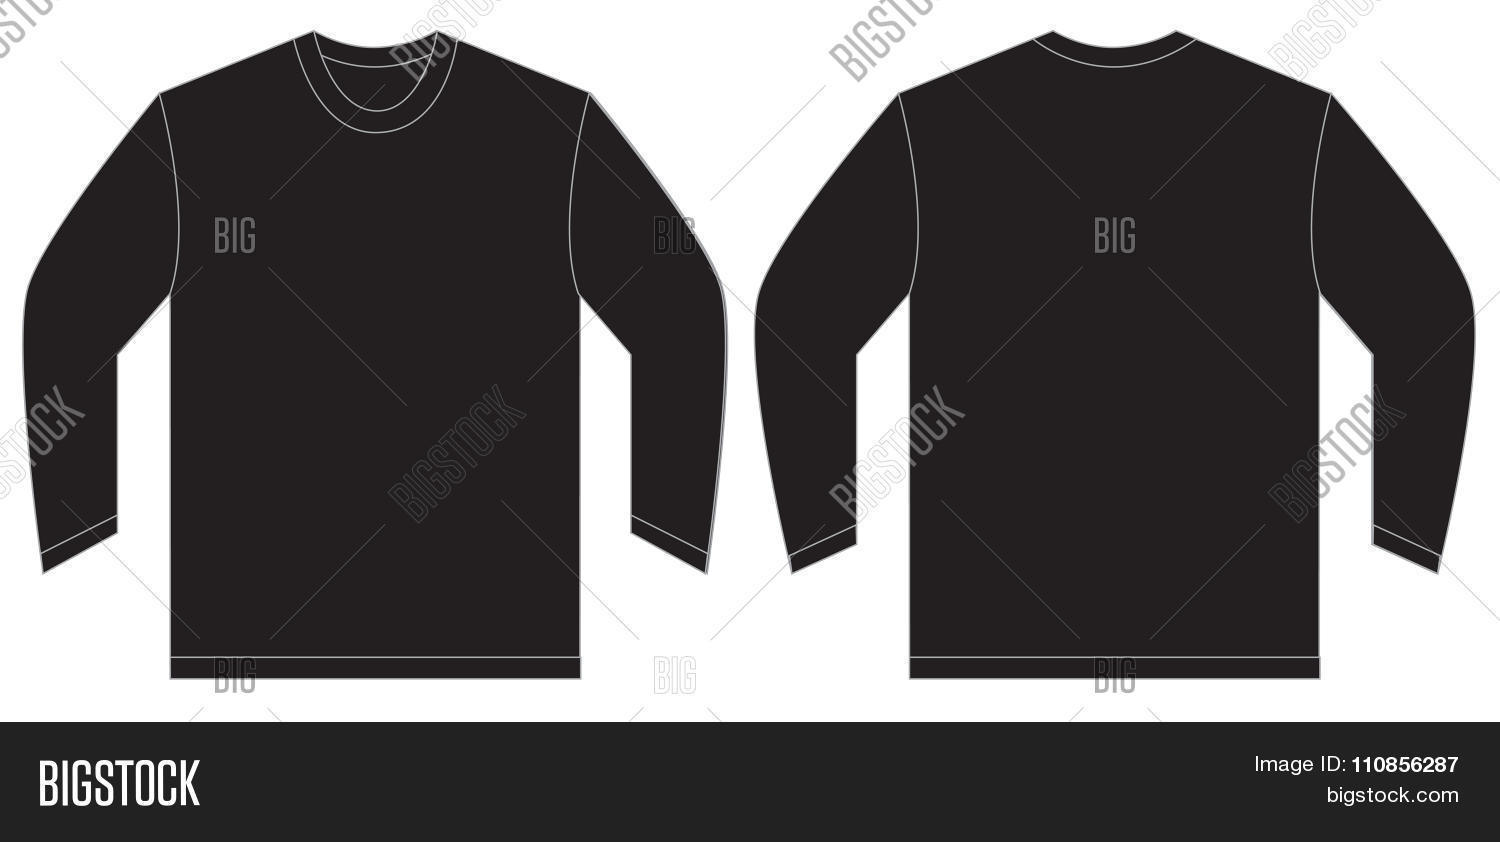 Design t shirt long sleeve - Black Long Sleeve T Shirt Design Template